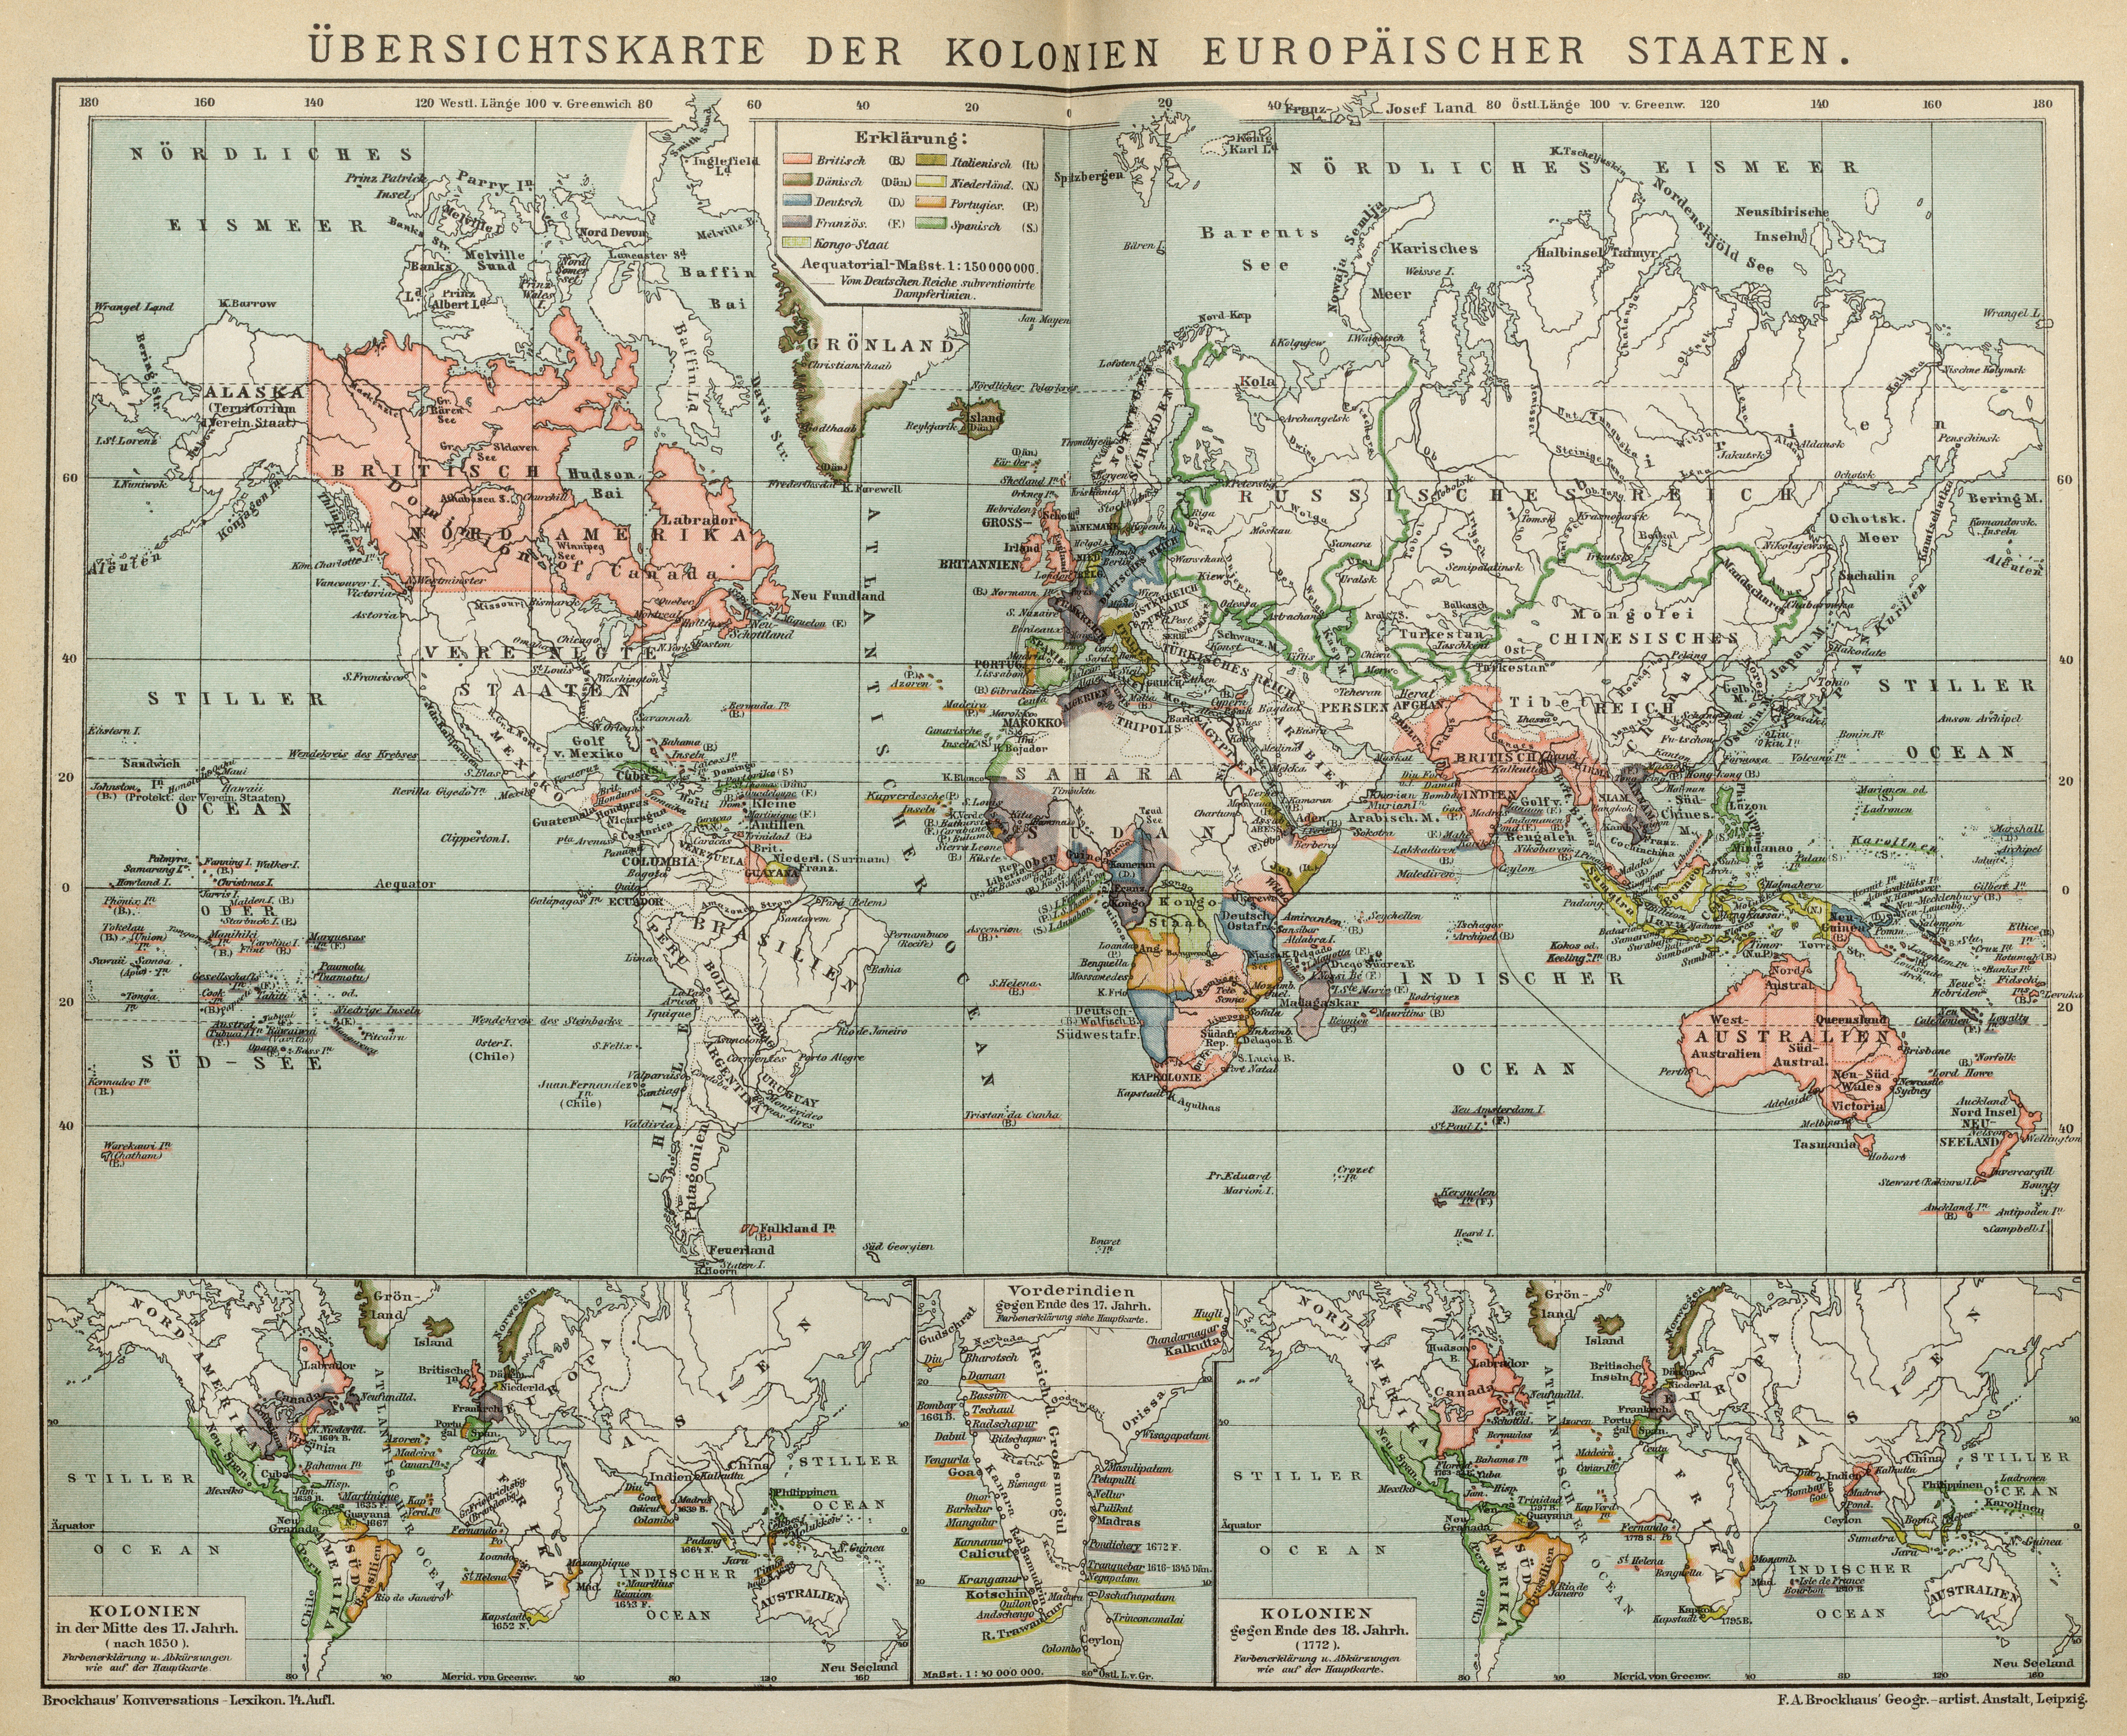 File:Europe sees the world as colonies in 1890.png   Wikimedia Commons